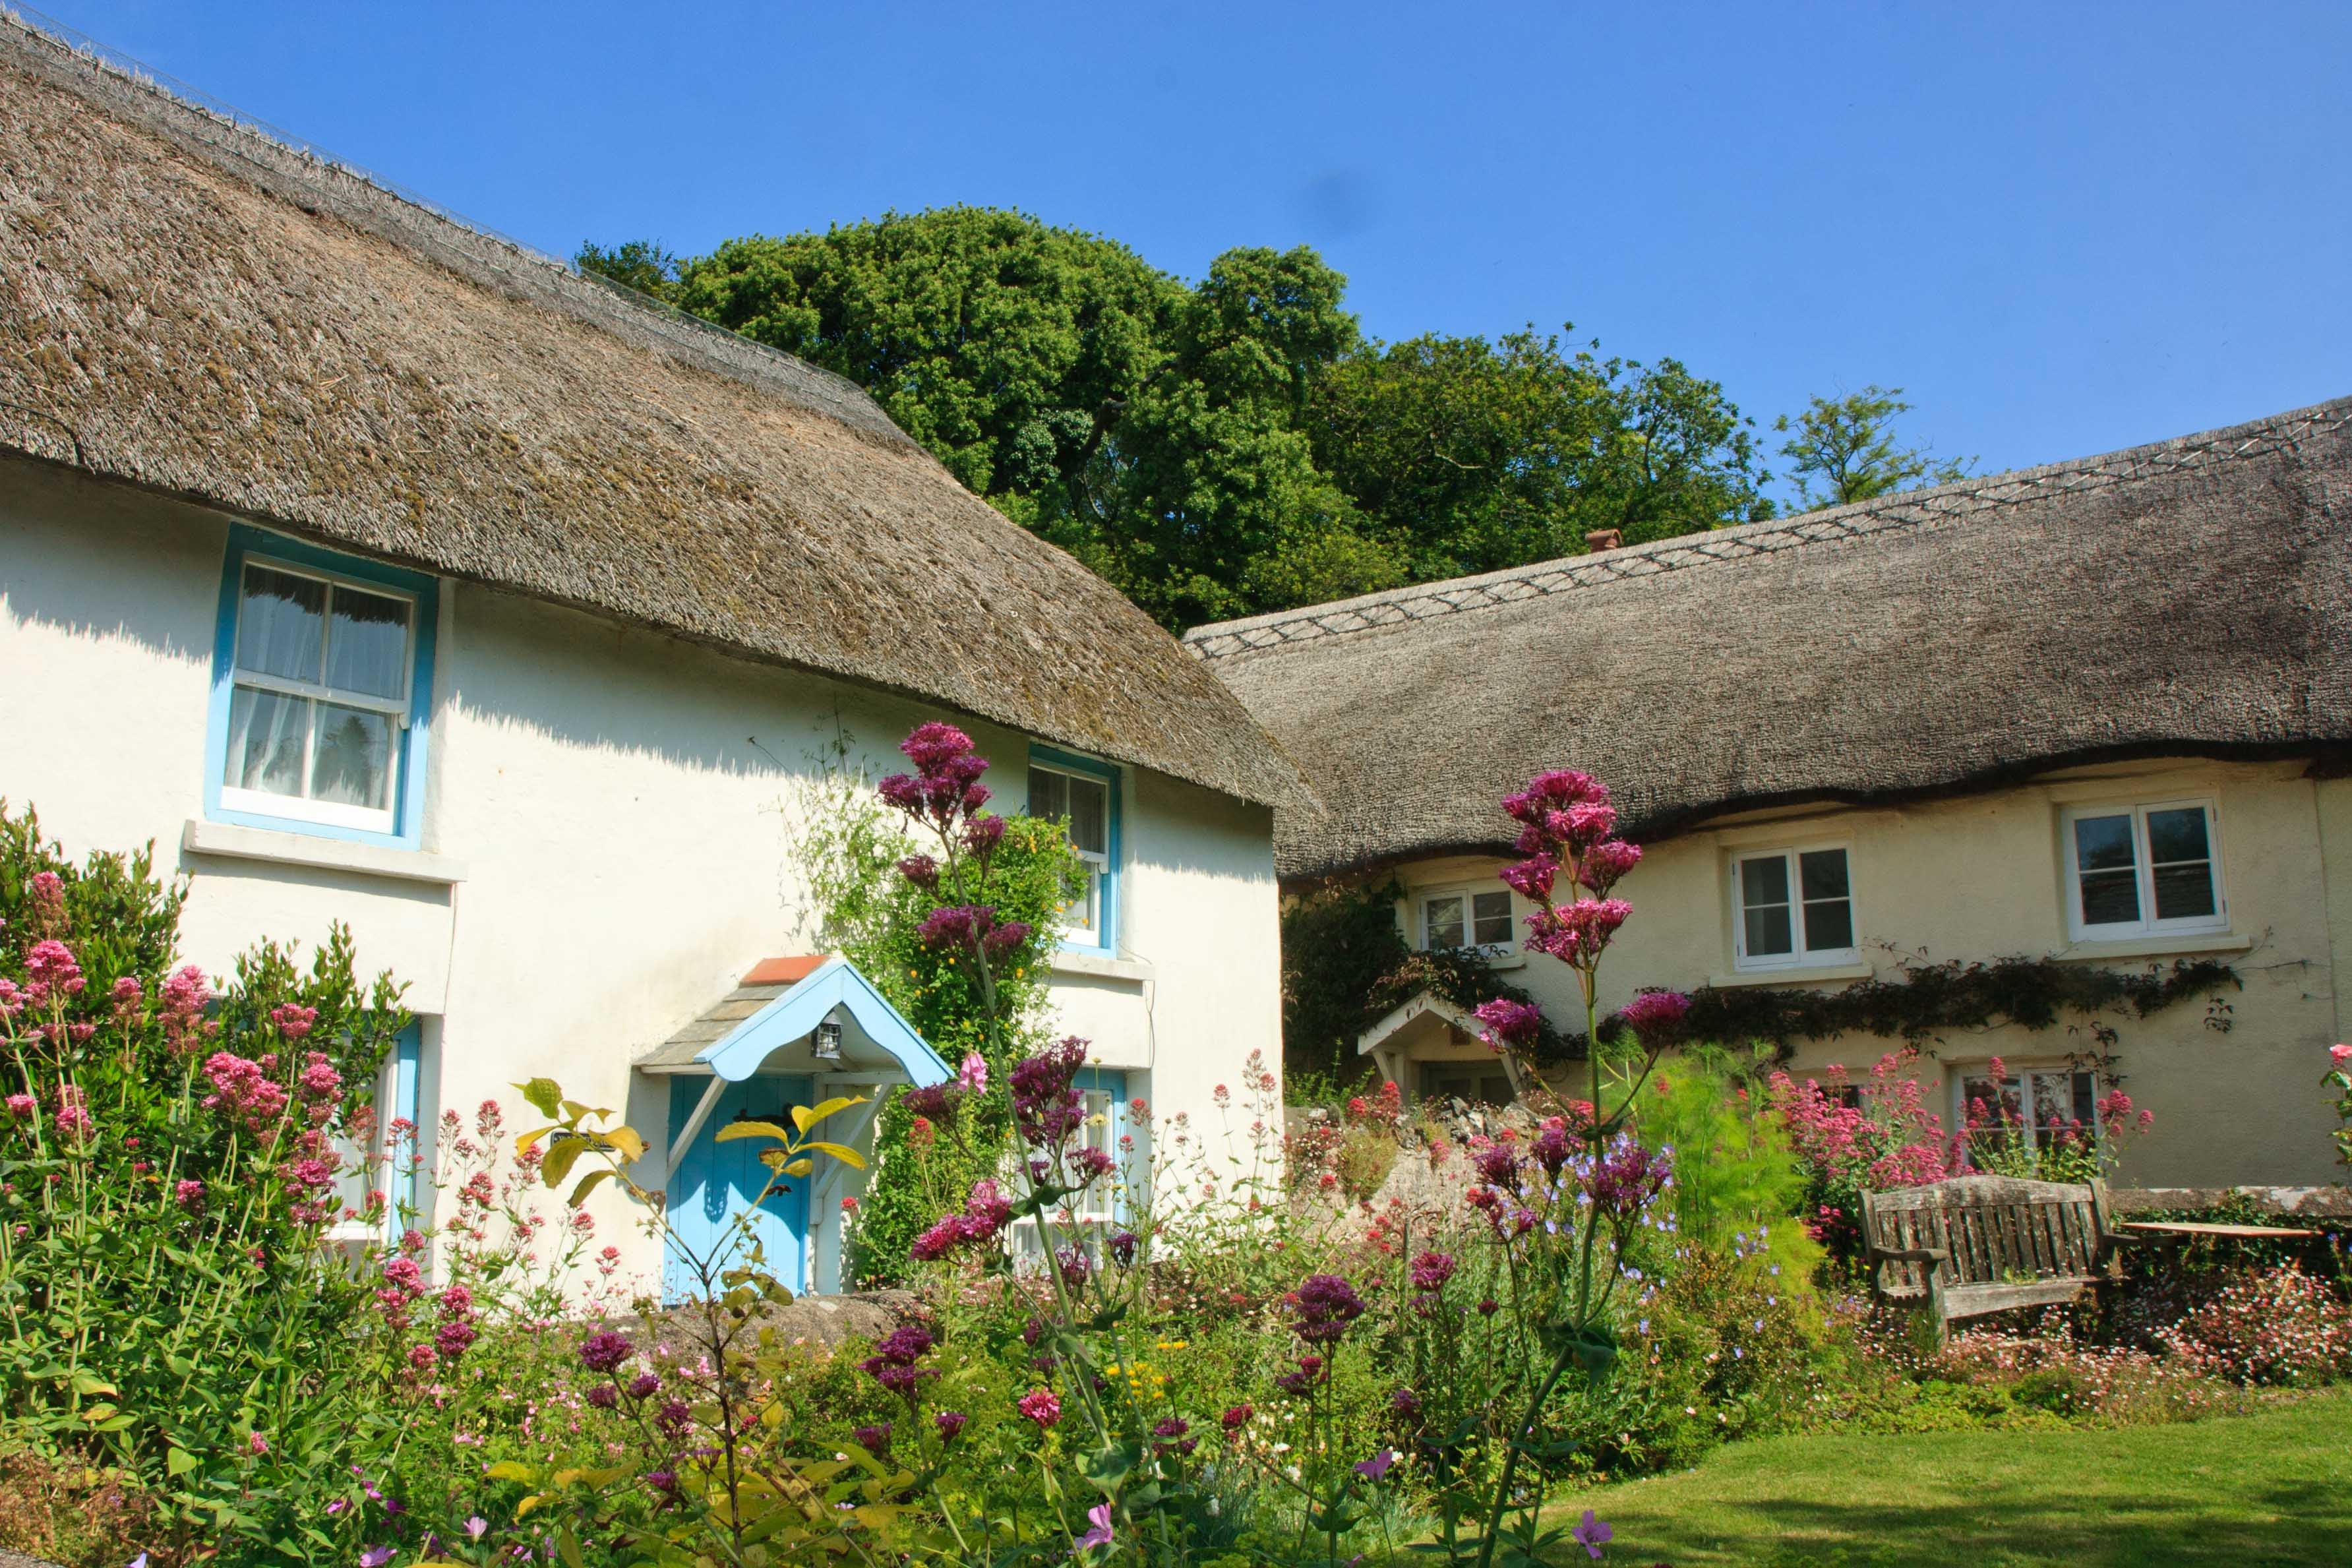 Thatched Cottages in Georgeham